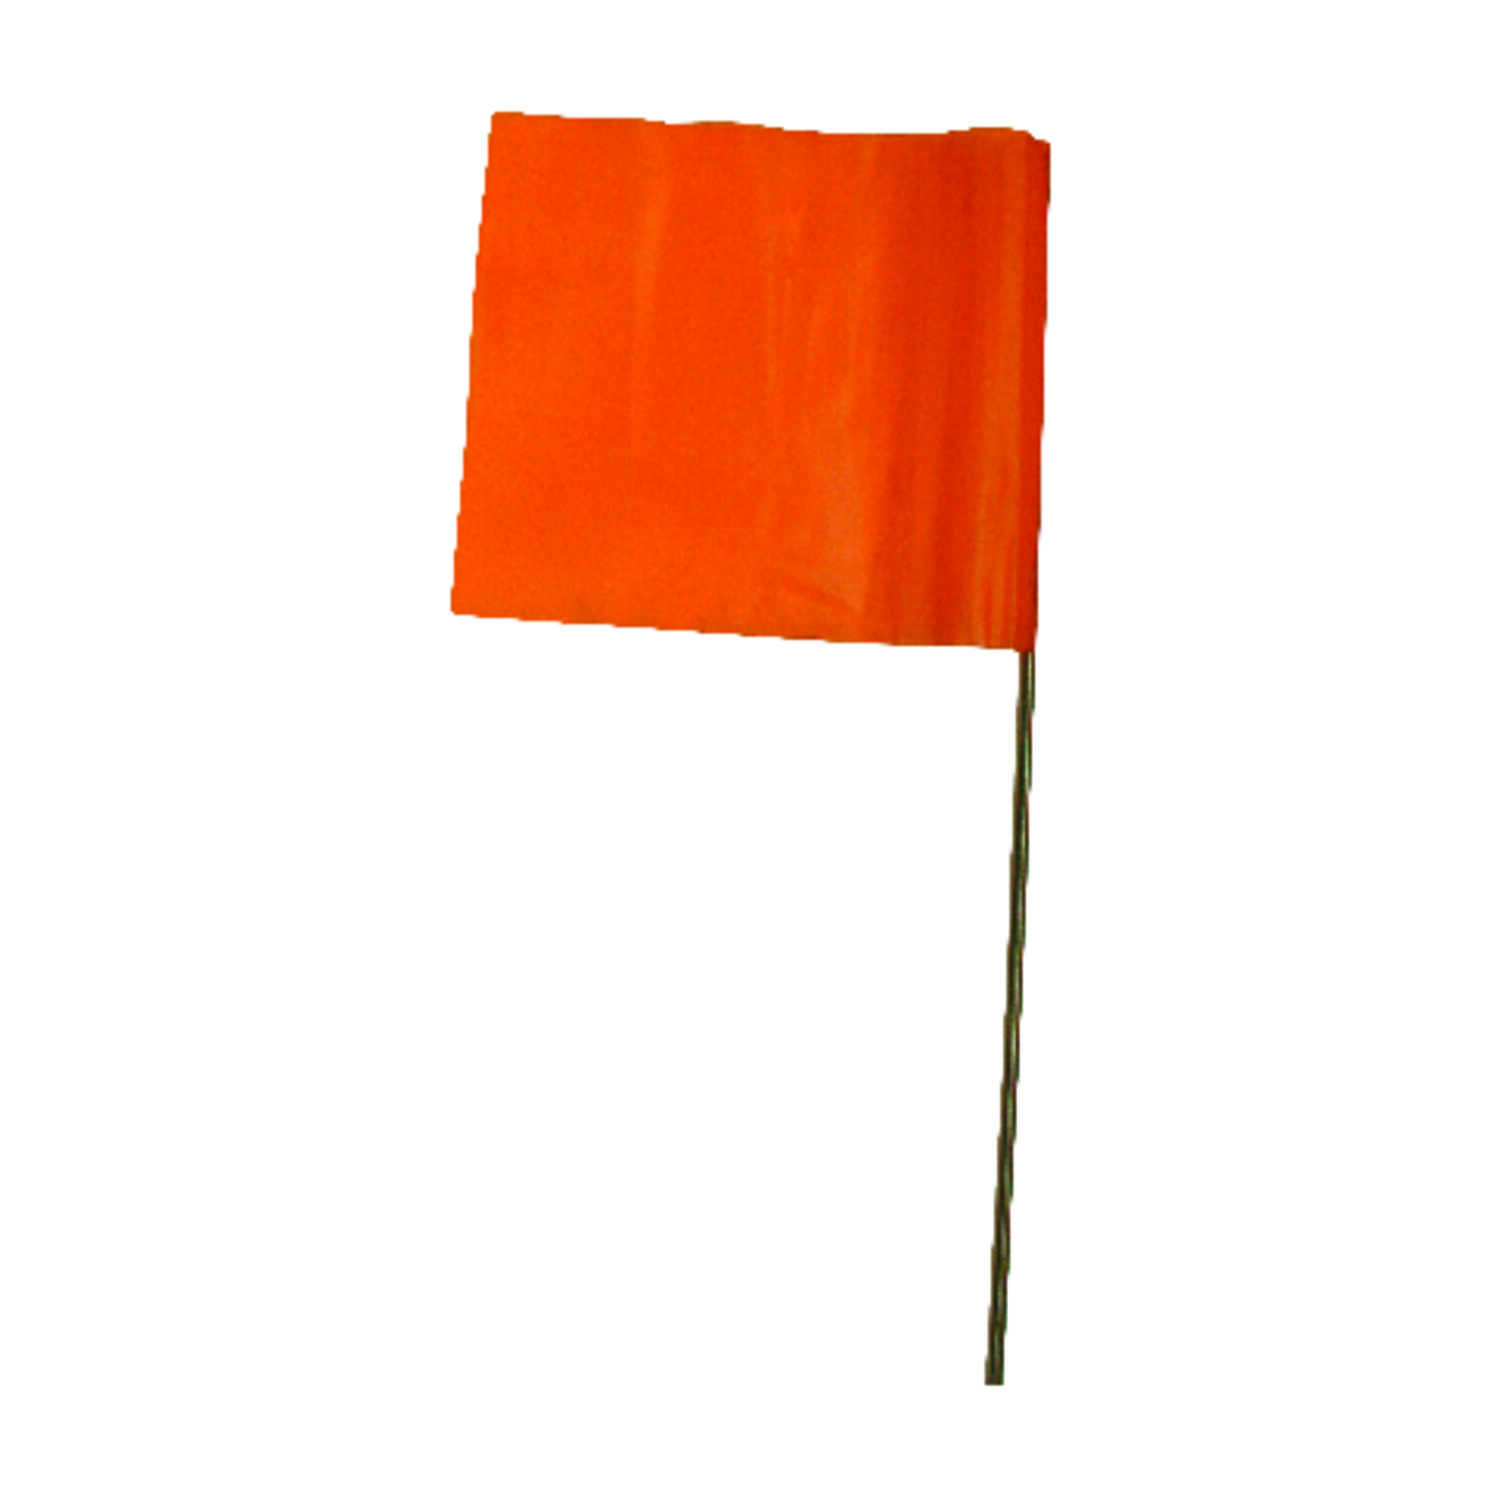 C.H. Hanson  15 in. Orange  Marking Flags  Plastic  10 pk